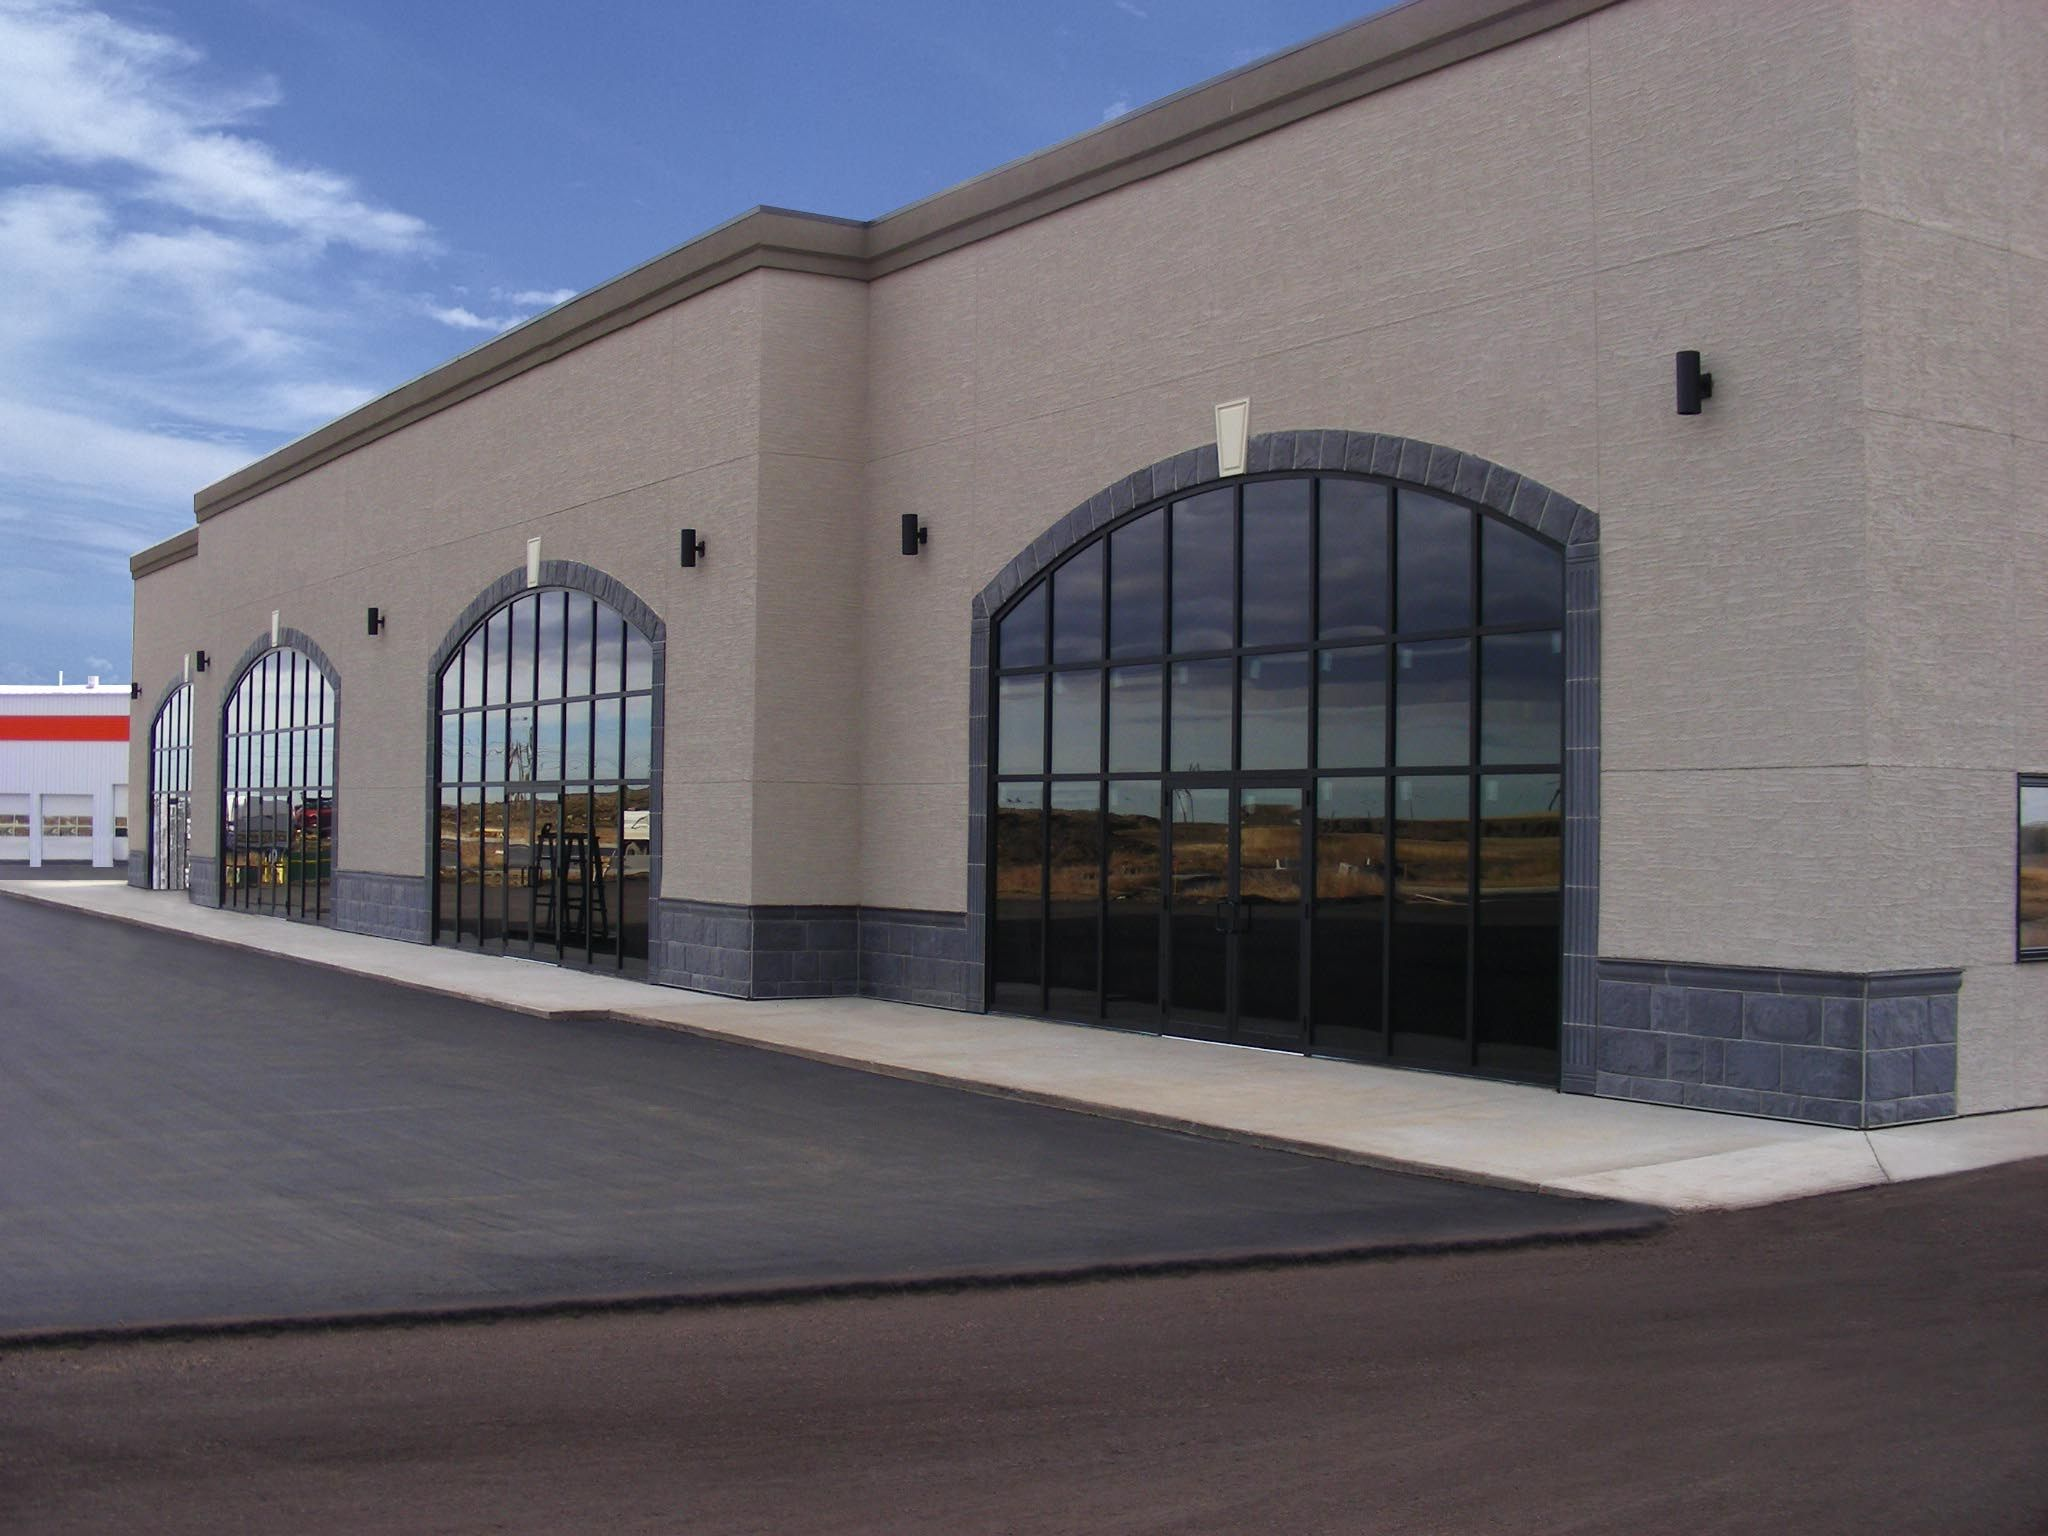 Engineered steel building system by Robertson Building Systems. Visit RobertsonBuildings.com or call 800-387-5335 to learn more.